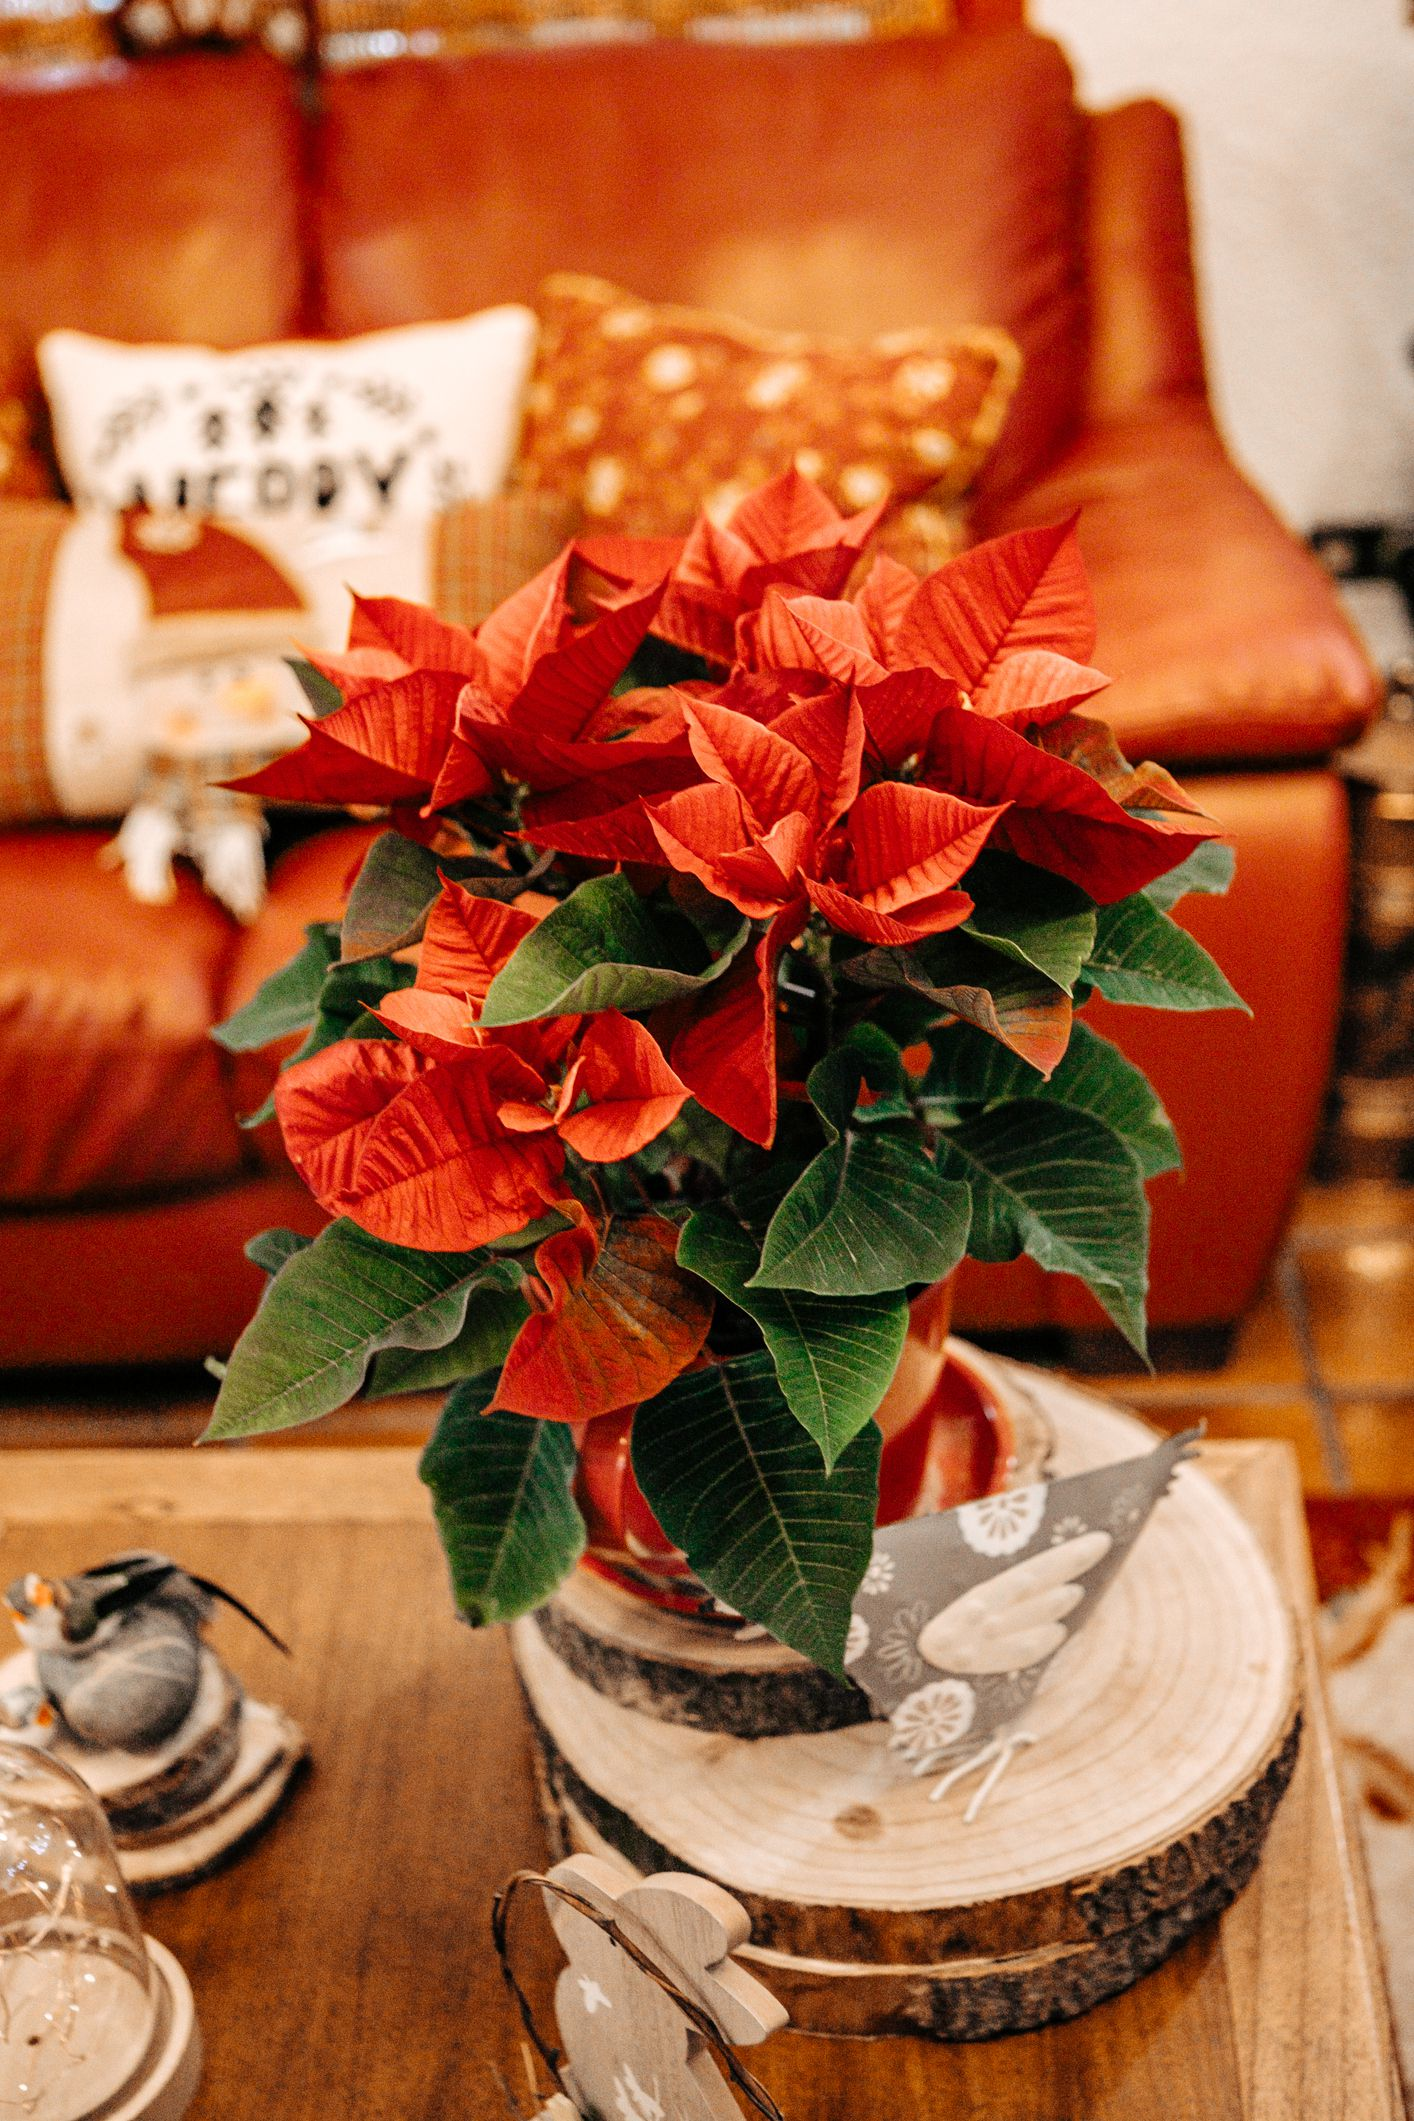 How to Care for (and Propagate) Your Poinsettia Plants